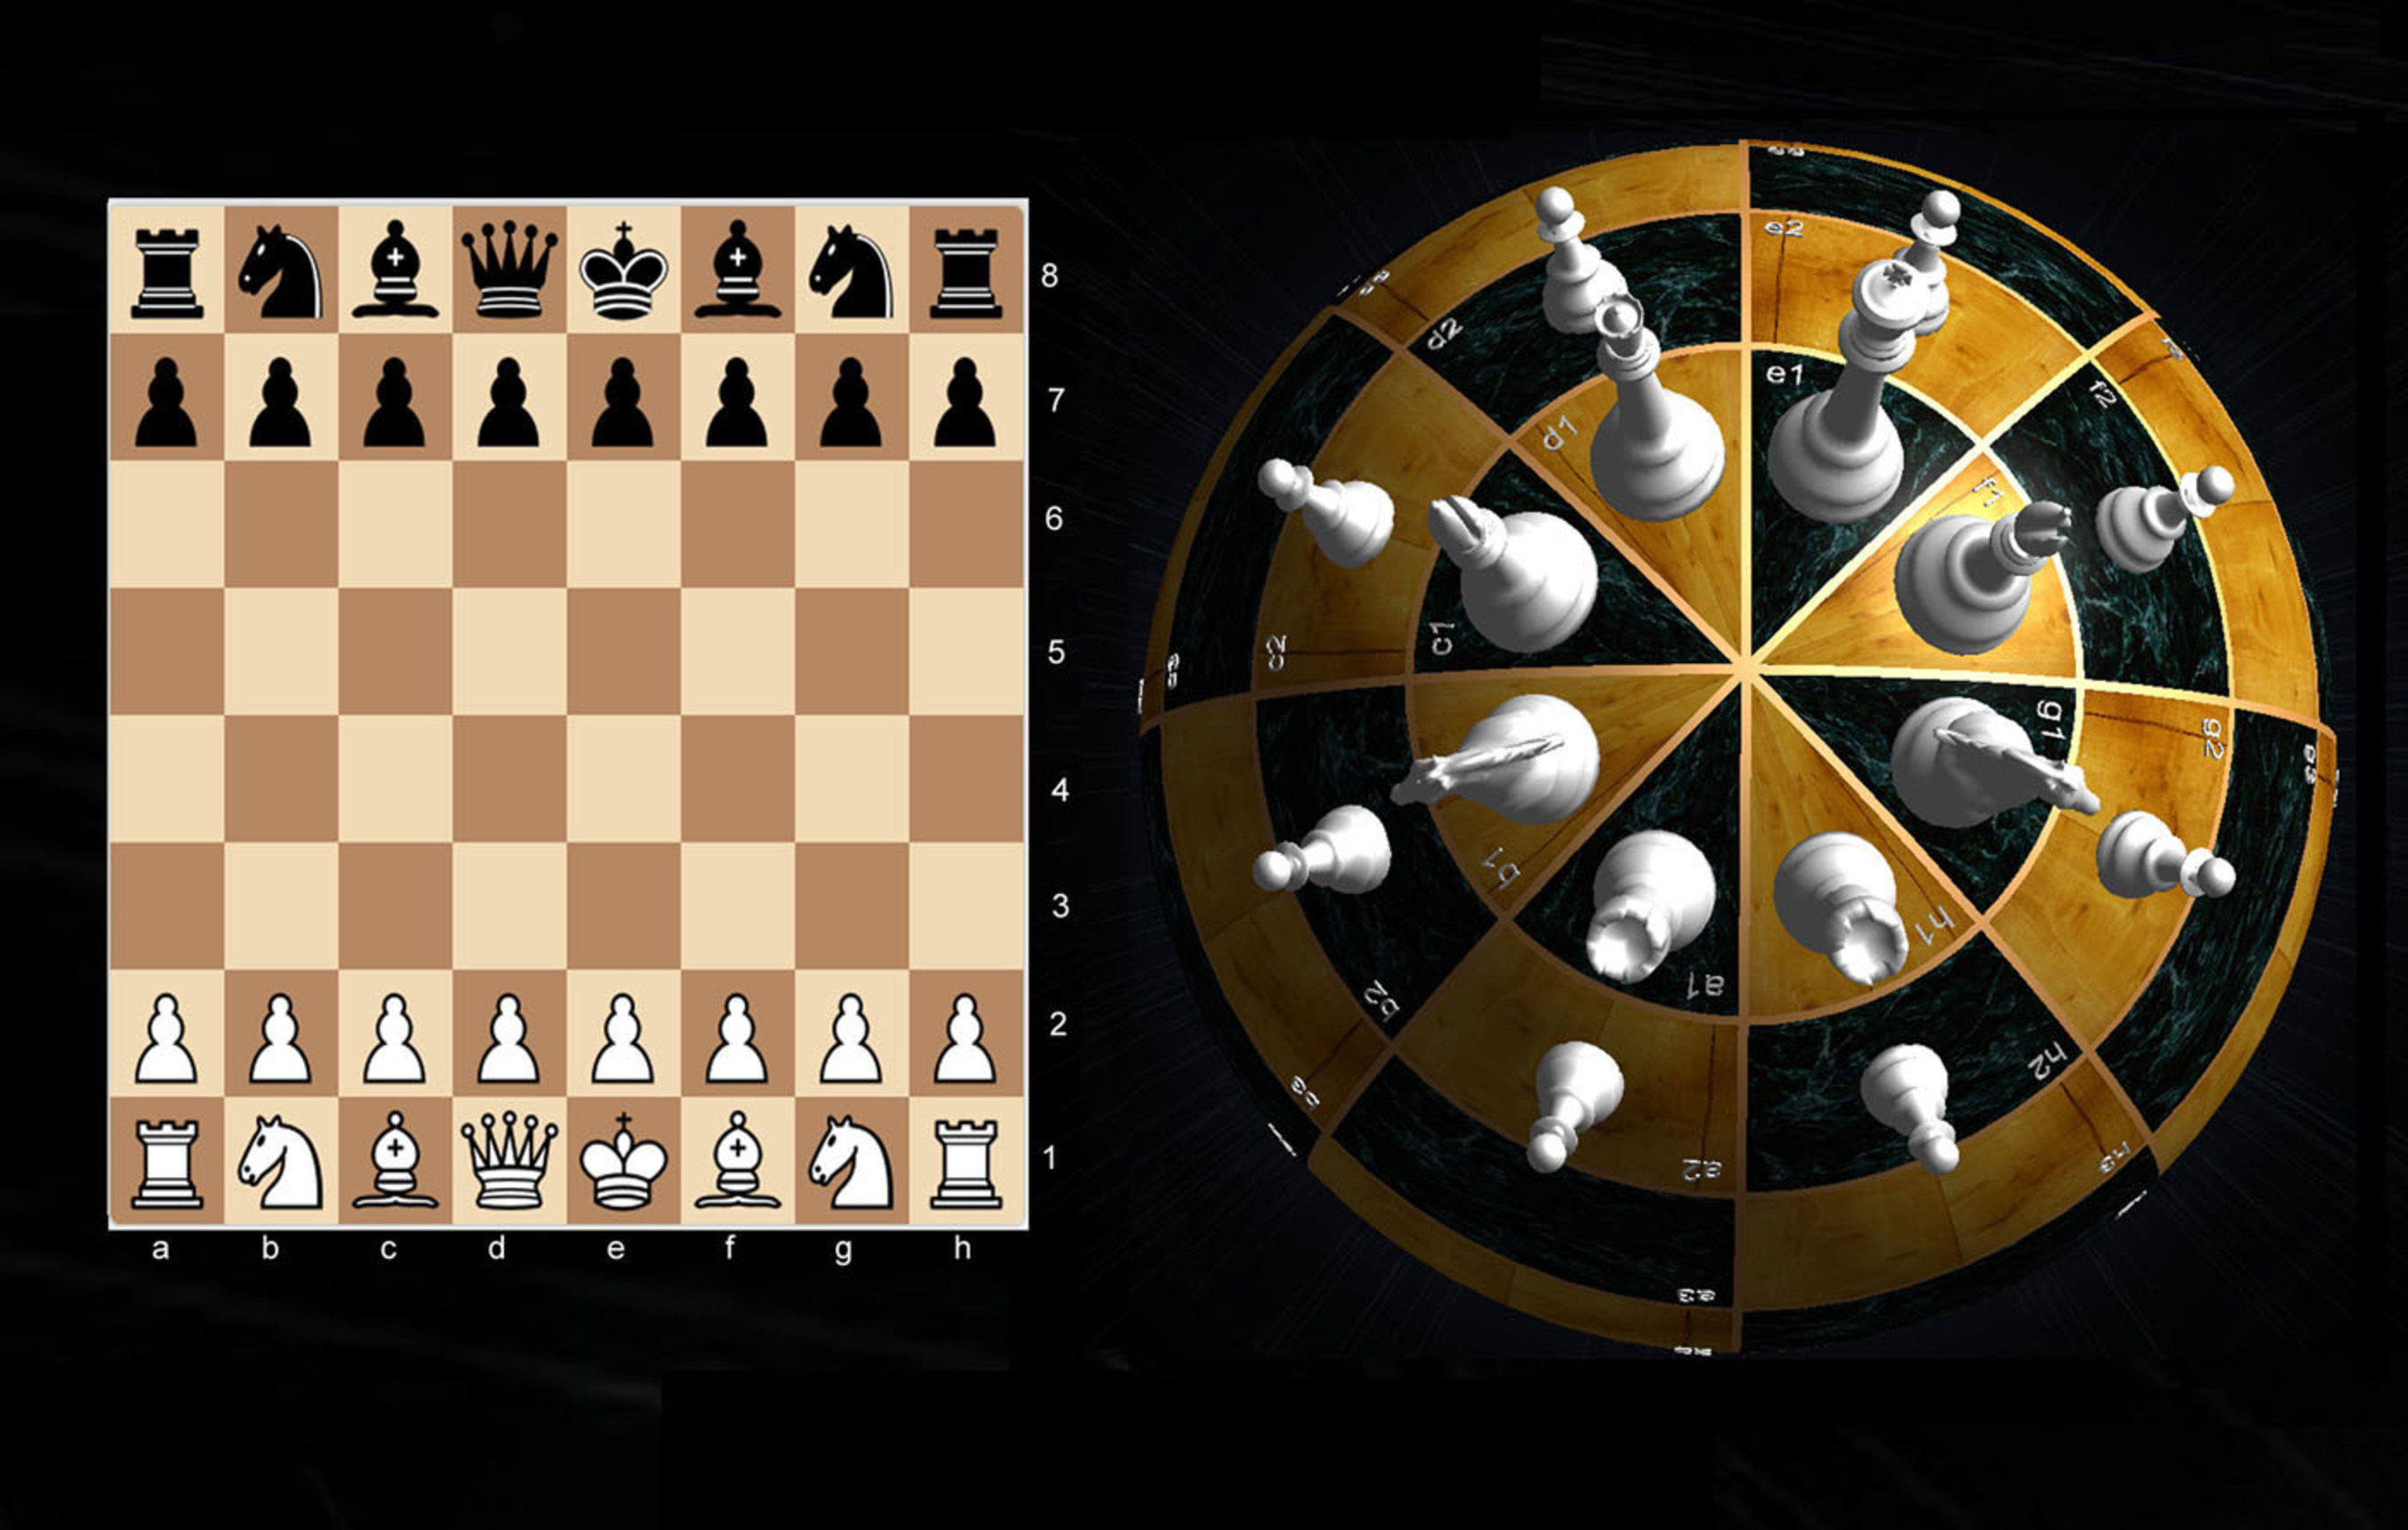 SphereChess has the same 64 squares and pieces set up like Chess, but SphereChess pieces and files A-H are arranged concentrically around opposing poles of a sphere.  (PRNewsFoto/SphereChess)